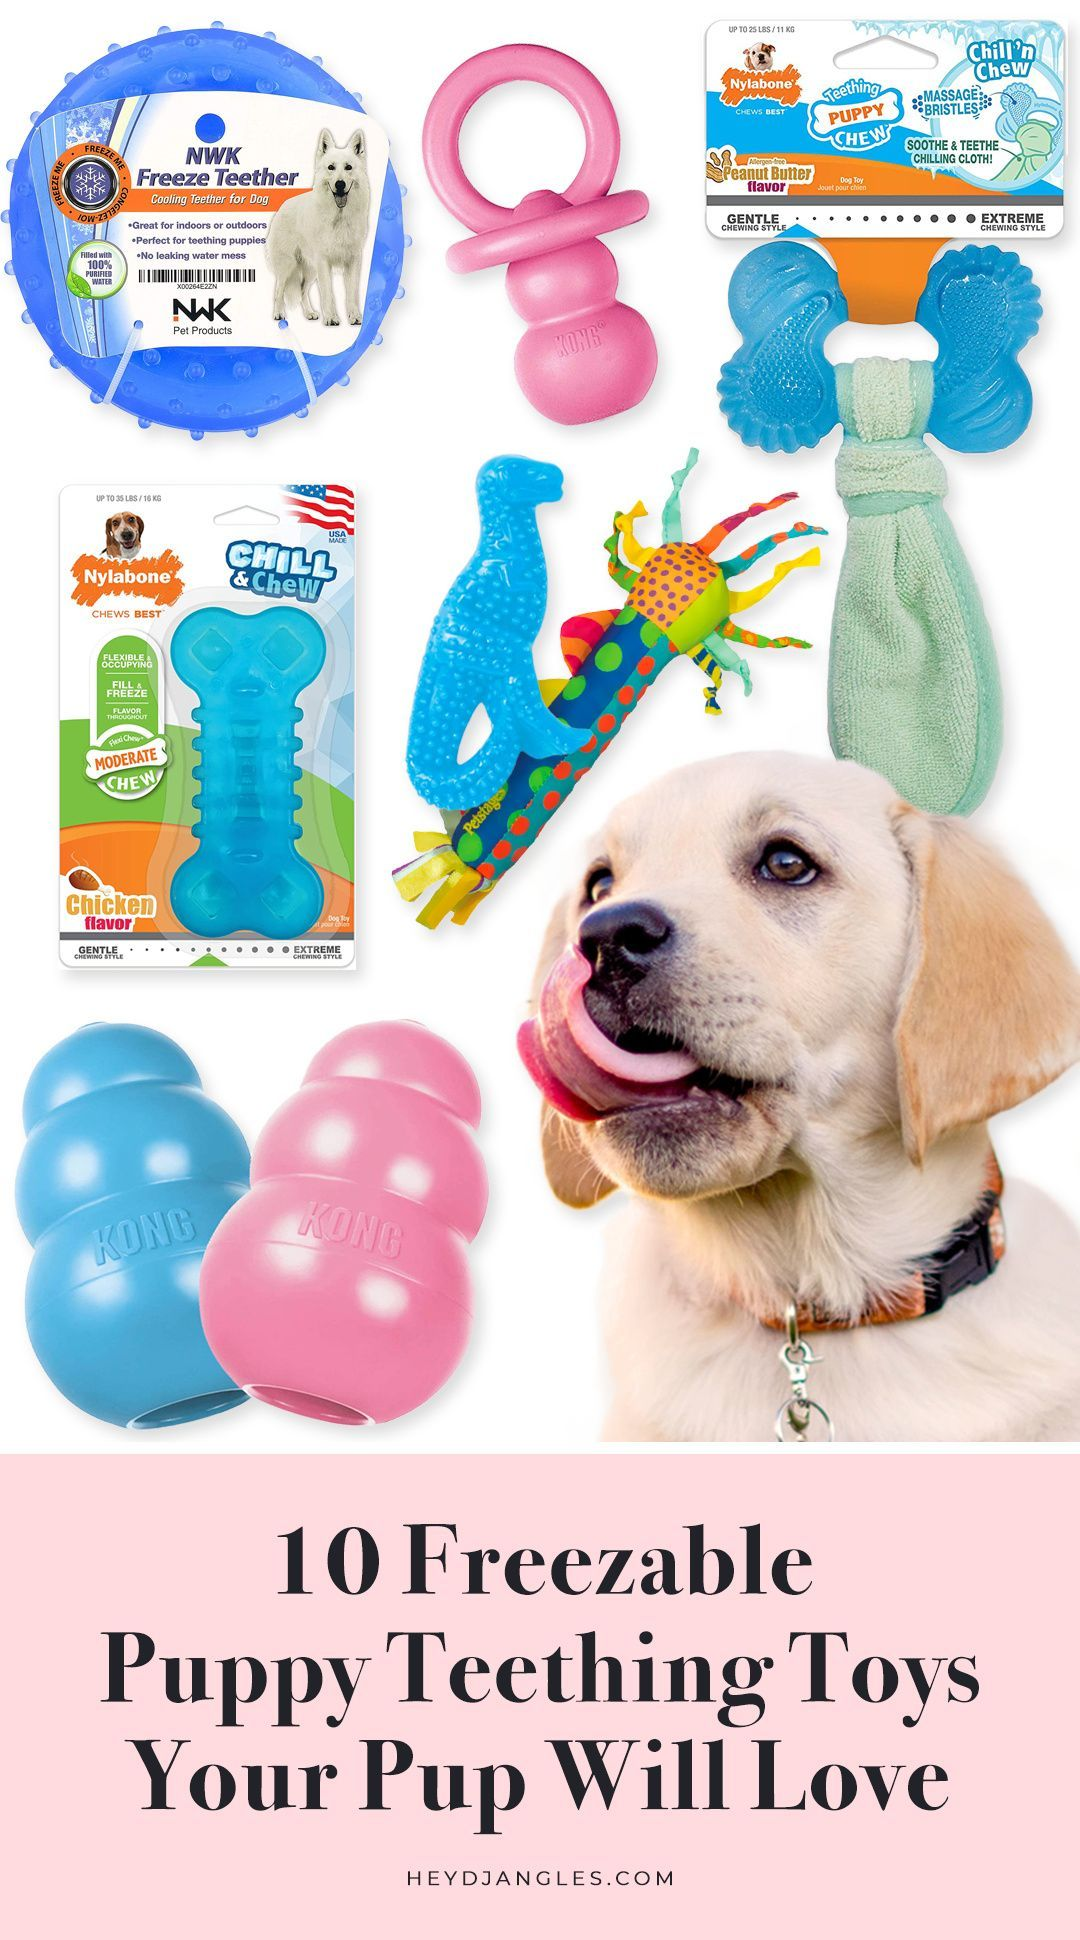 10 Freezable Puppy Teething Toys Your Pup Will Love Puppy Toys Teething Puppy Teething Puppy Chew Toys